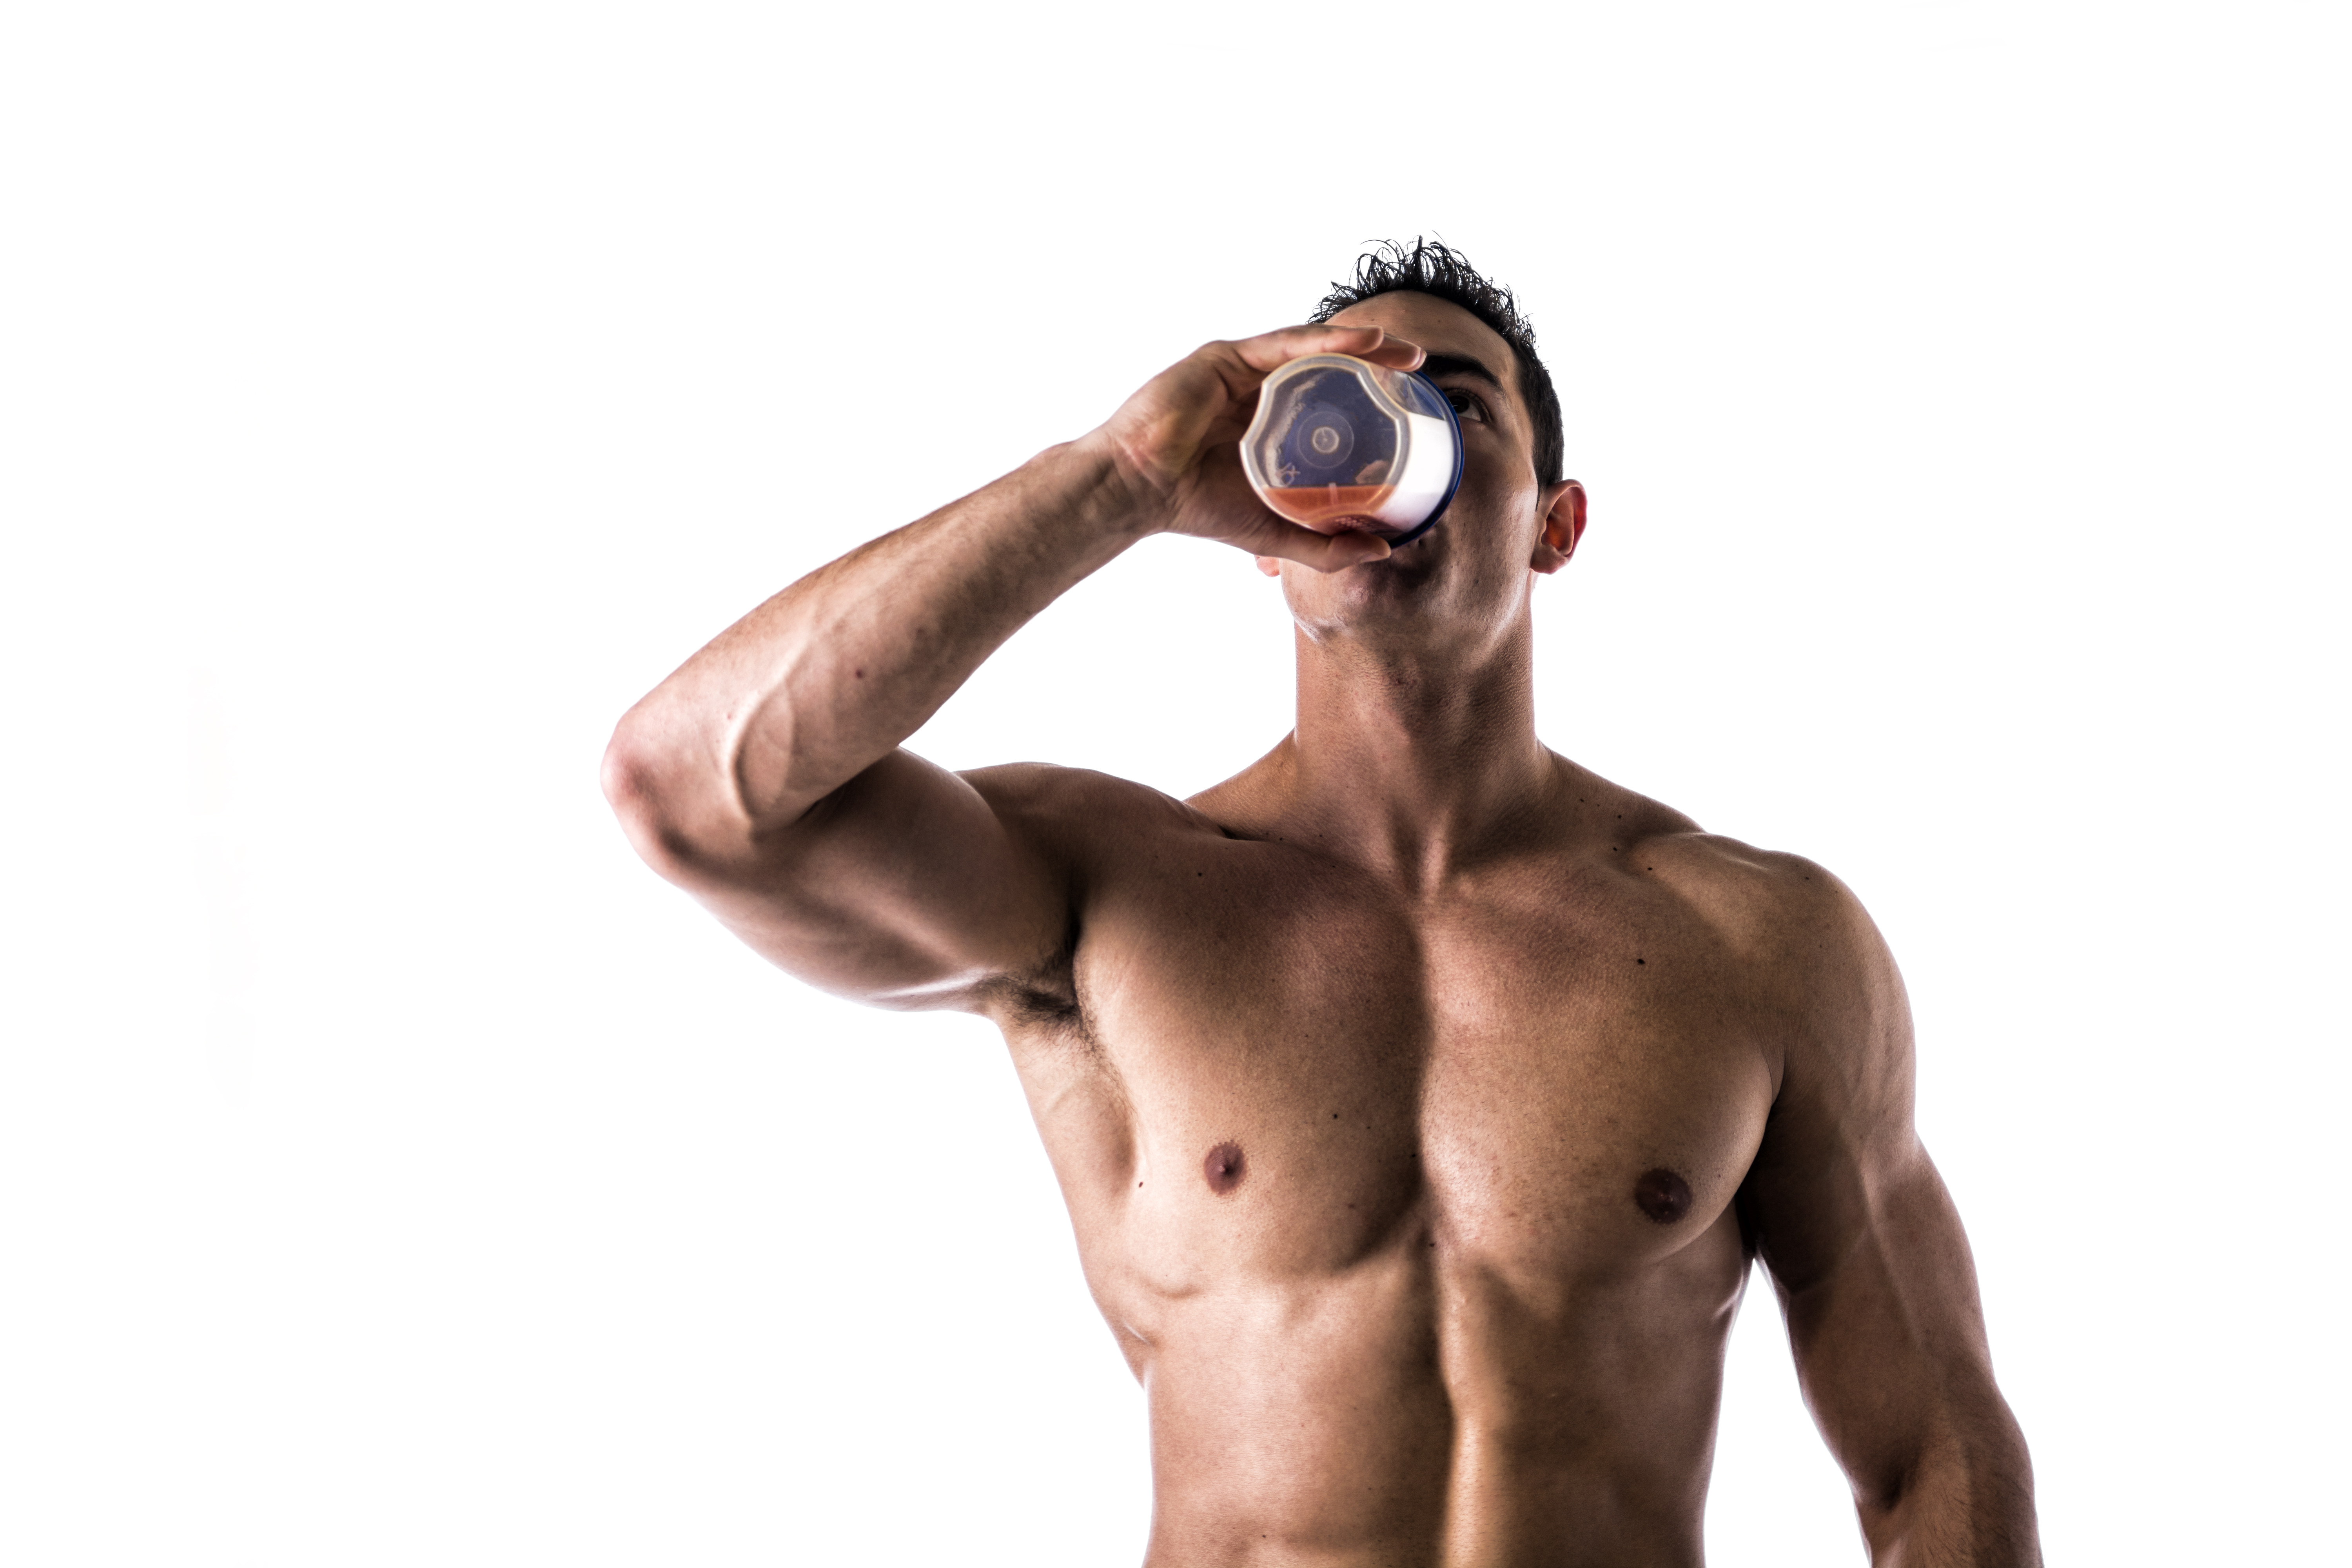 The Definitive Natural Bodybuilding Guide for Building